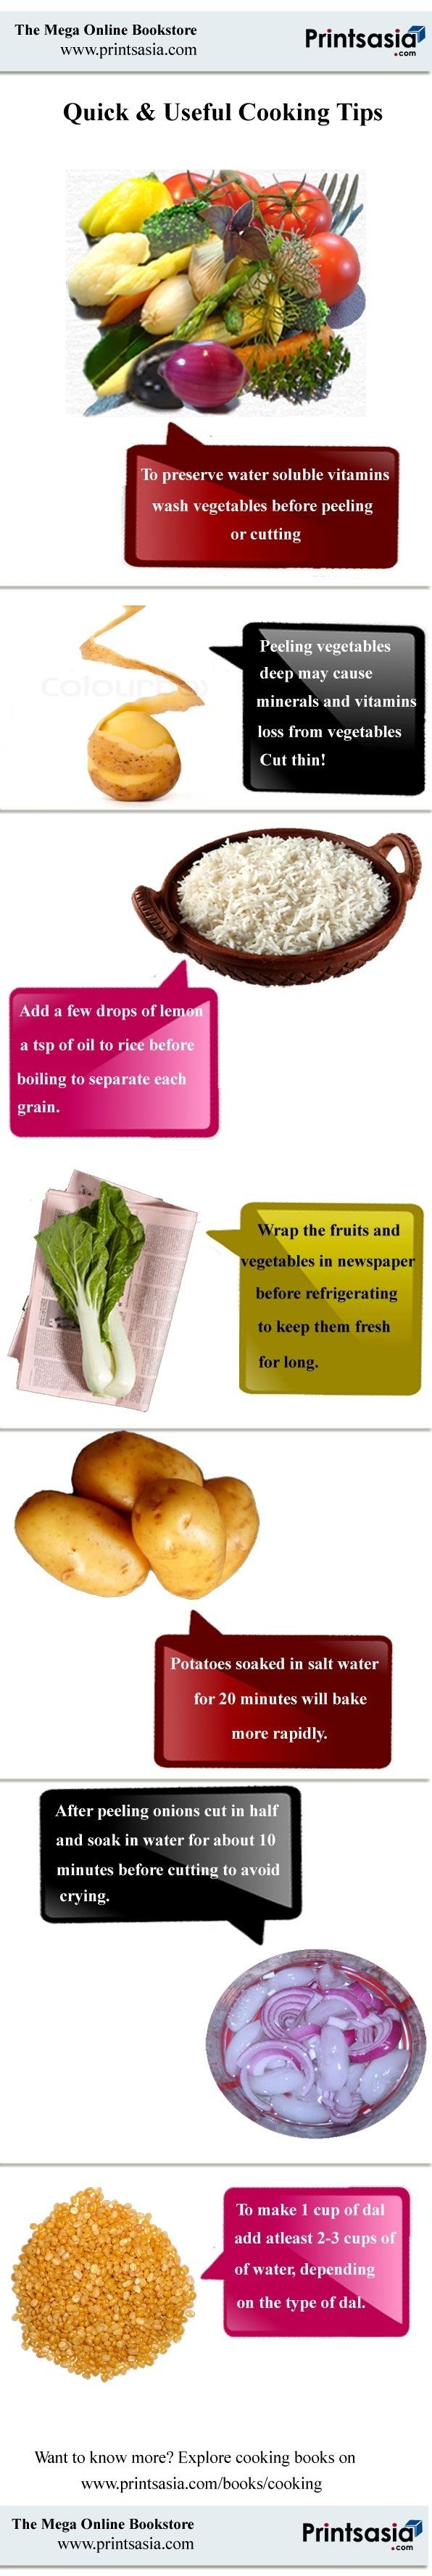 quick-useful-cooking-tips-infographic: Cooking Food, Chicken Recipes, Express Recipes, Food Cooking, Cooking Tips, Cooking Infographic, Cooking Recipes, Recipes Cooking